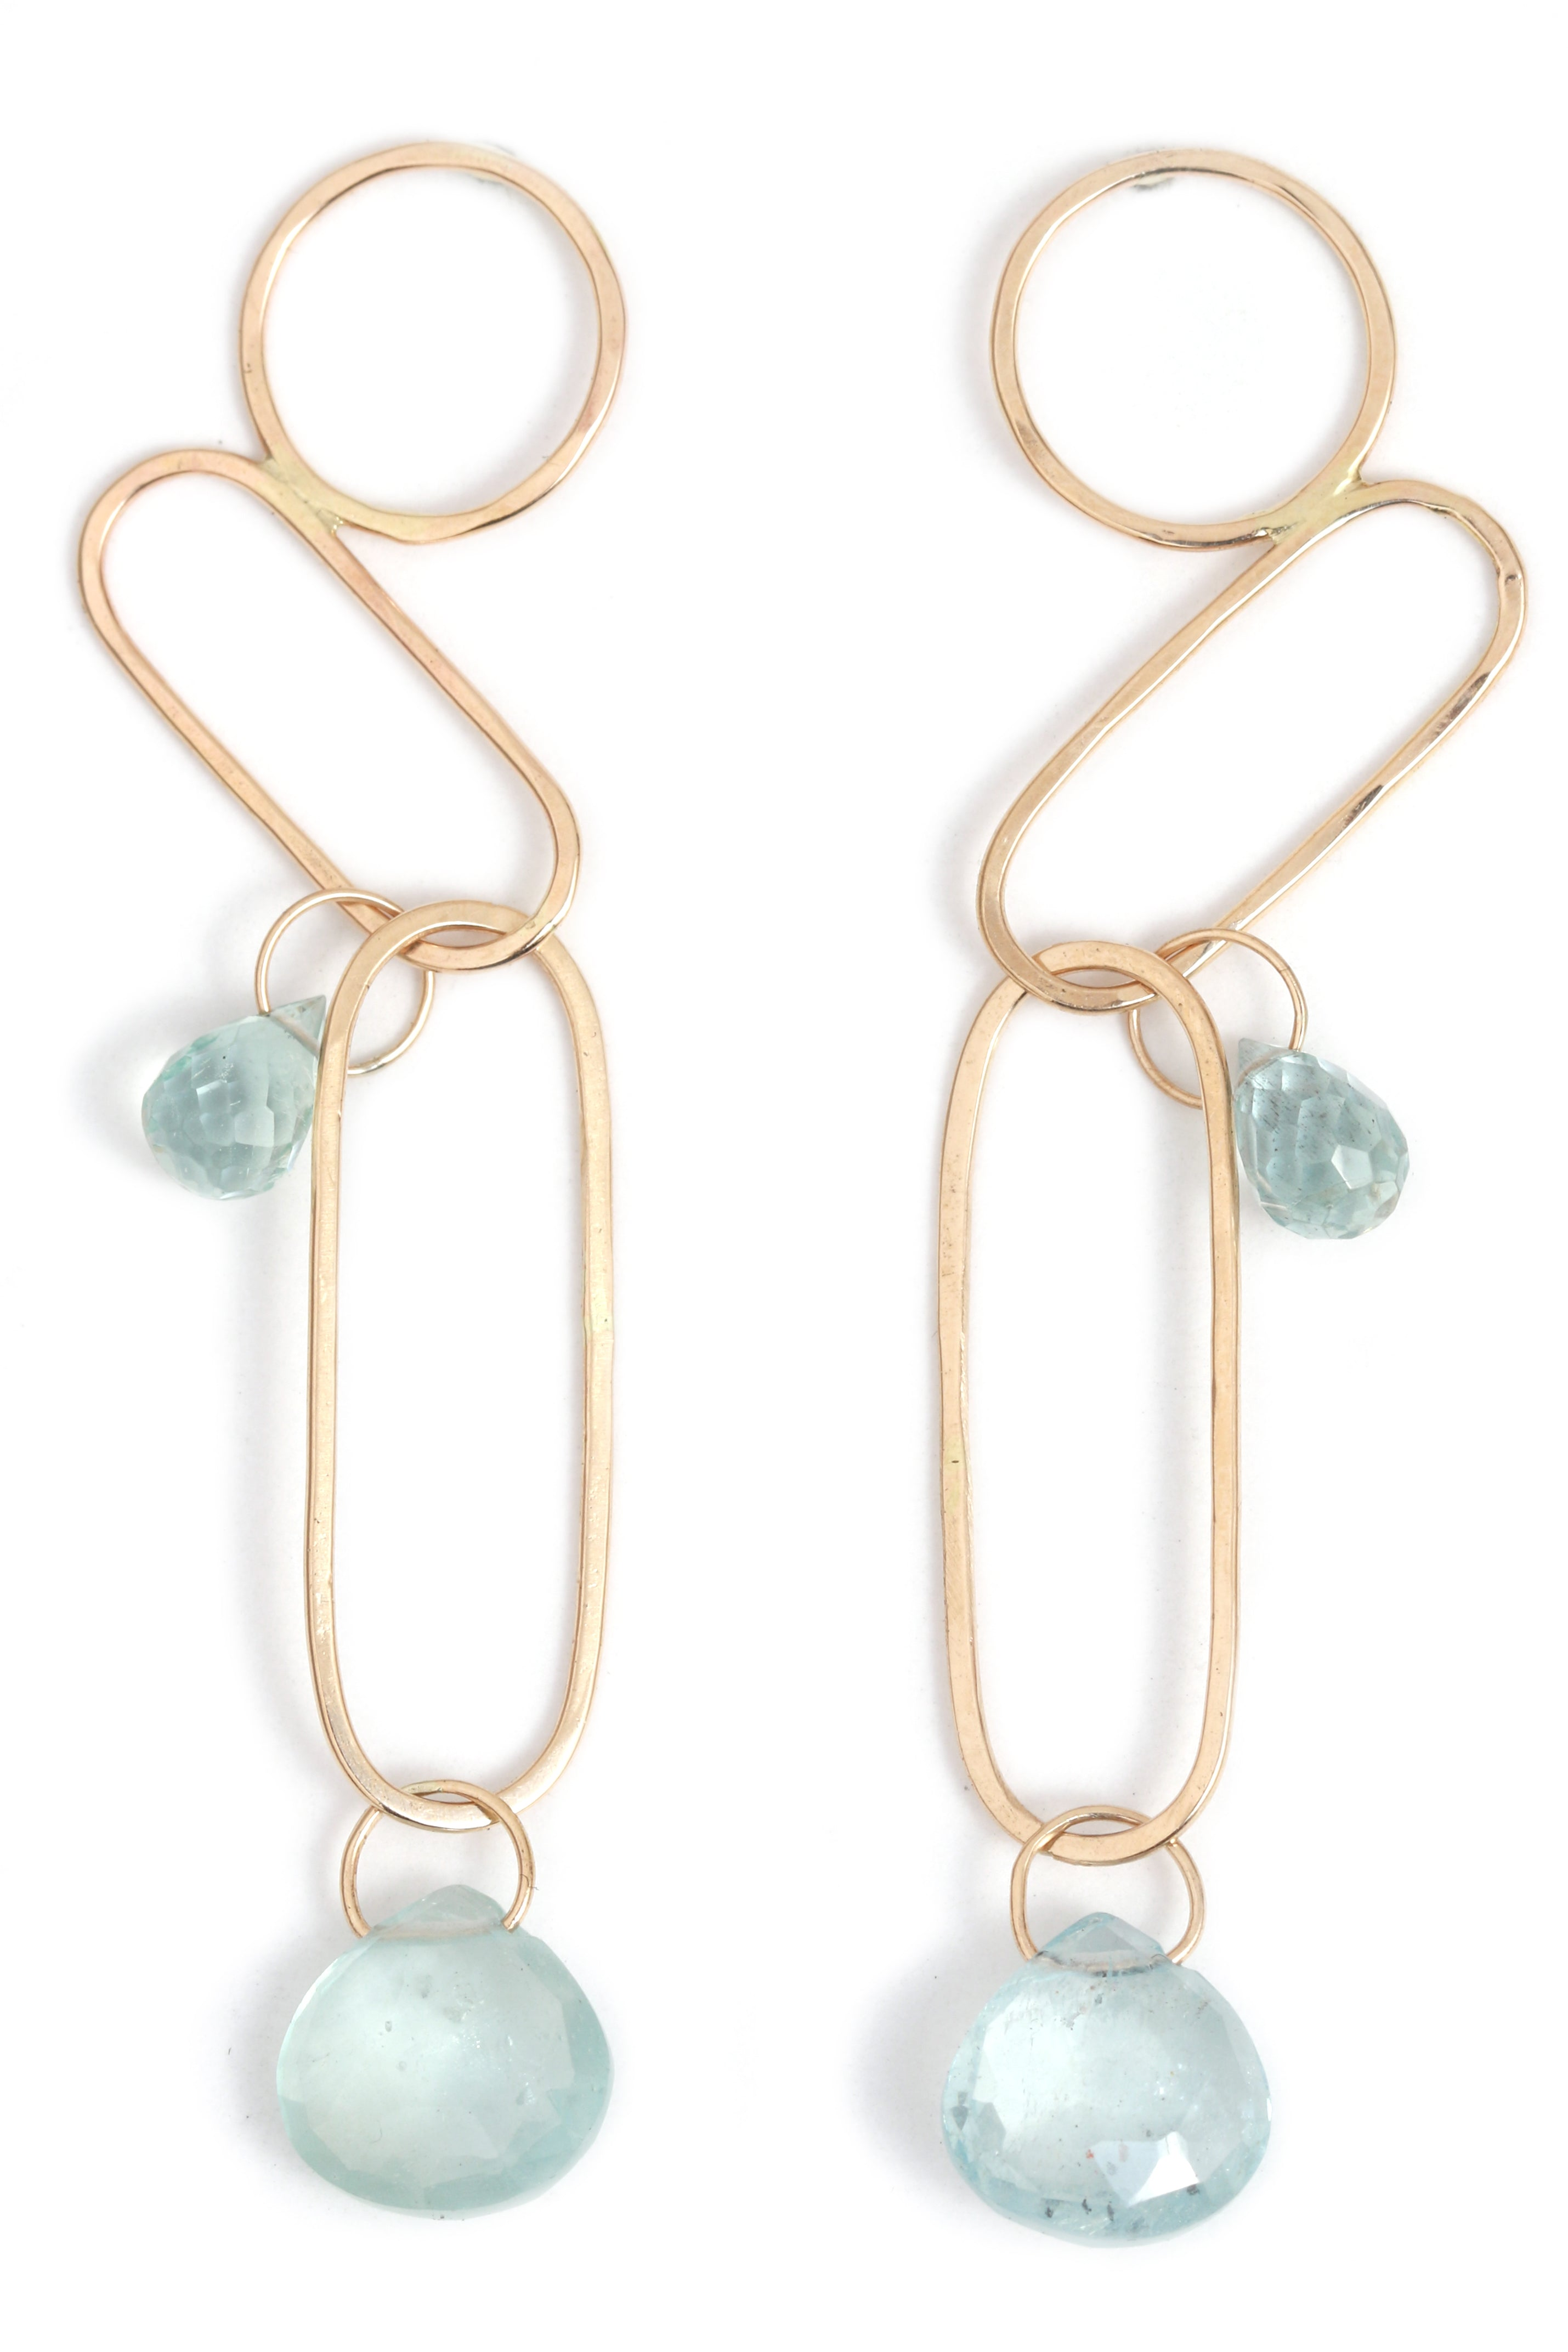 Mixed Shape Dangle Earrings With Aquamarines - Melissa Joy Manning Jewelry